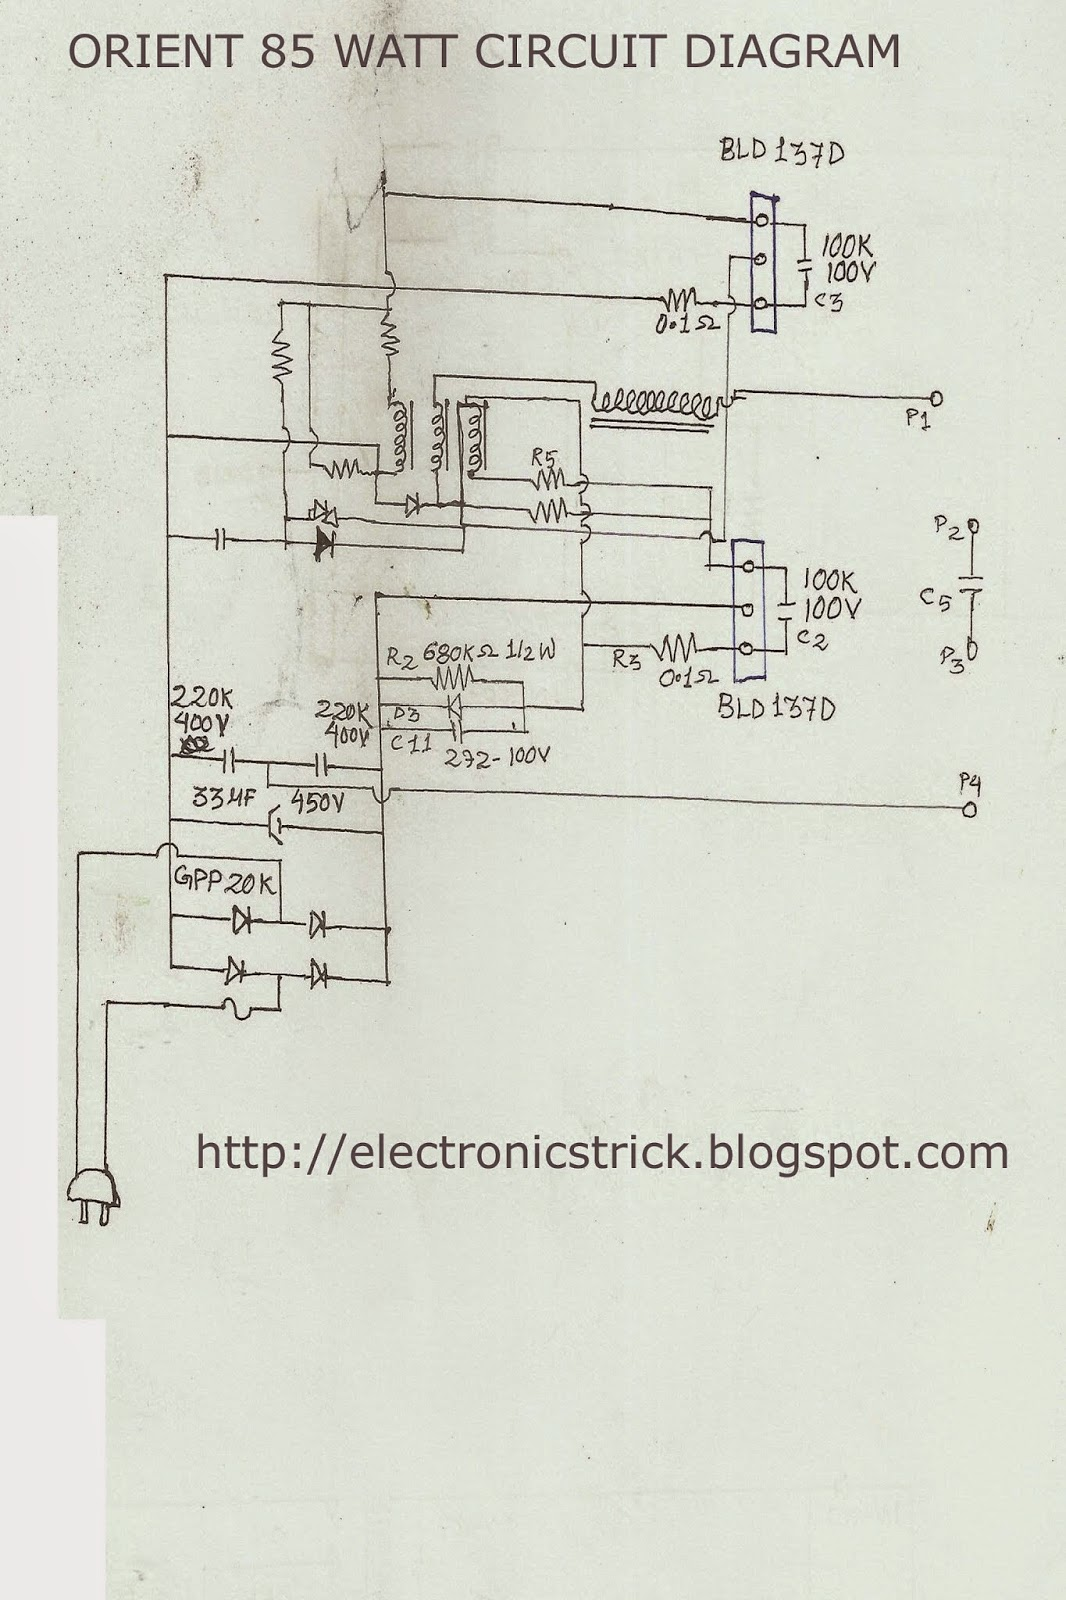 orient 85 watt cfl bulb circuit diagram tips and trick electronic